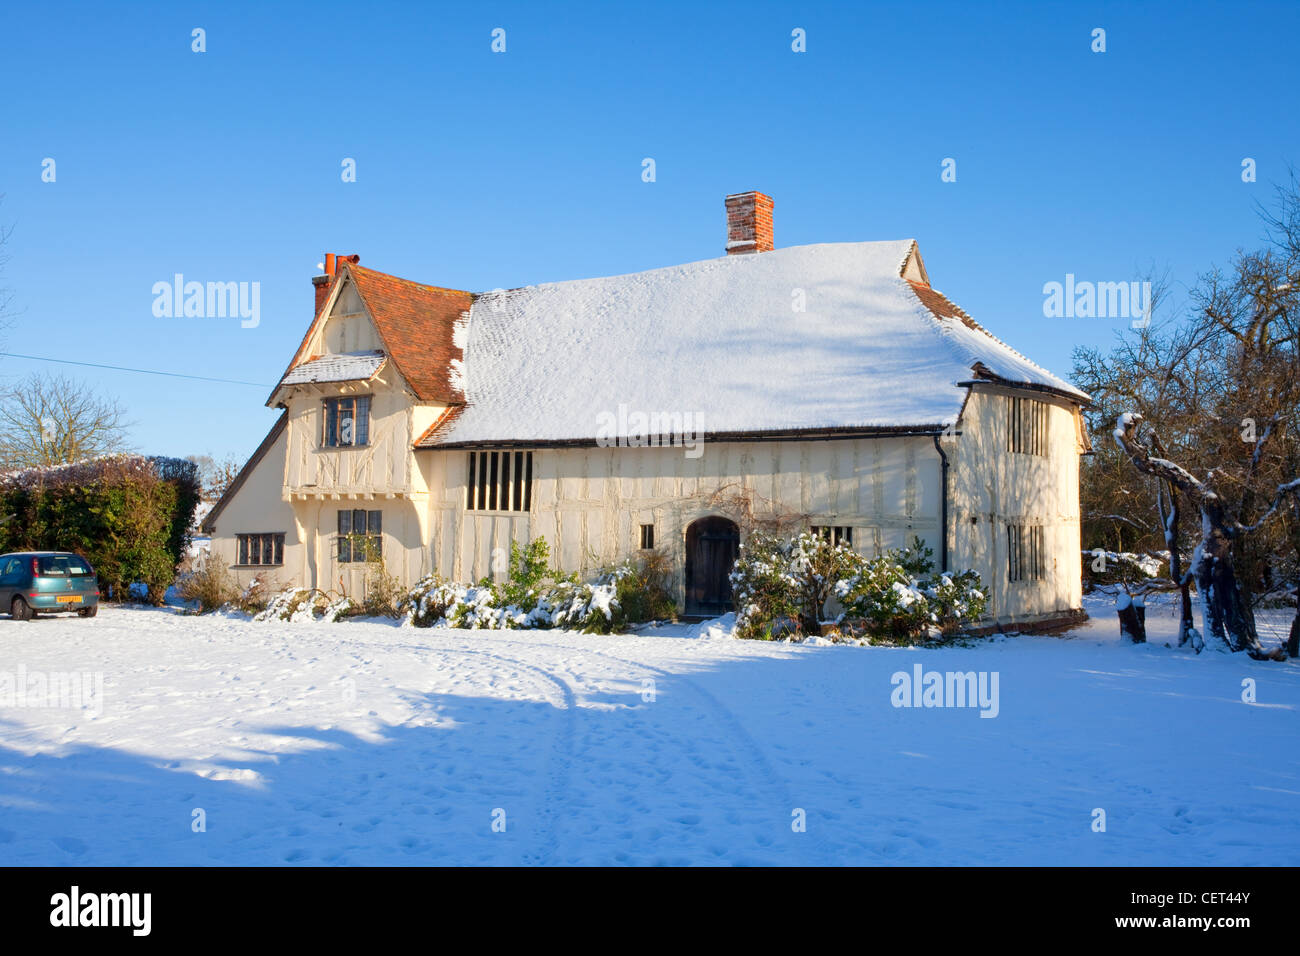 Snow on and around Valley Farm, a medieval Hall House built in the 15th century. It is the oldest building in Flatford. - Stock Image